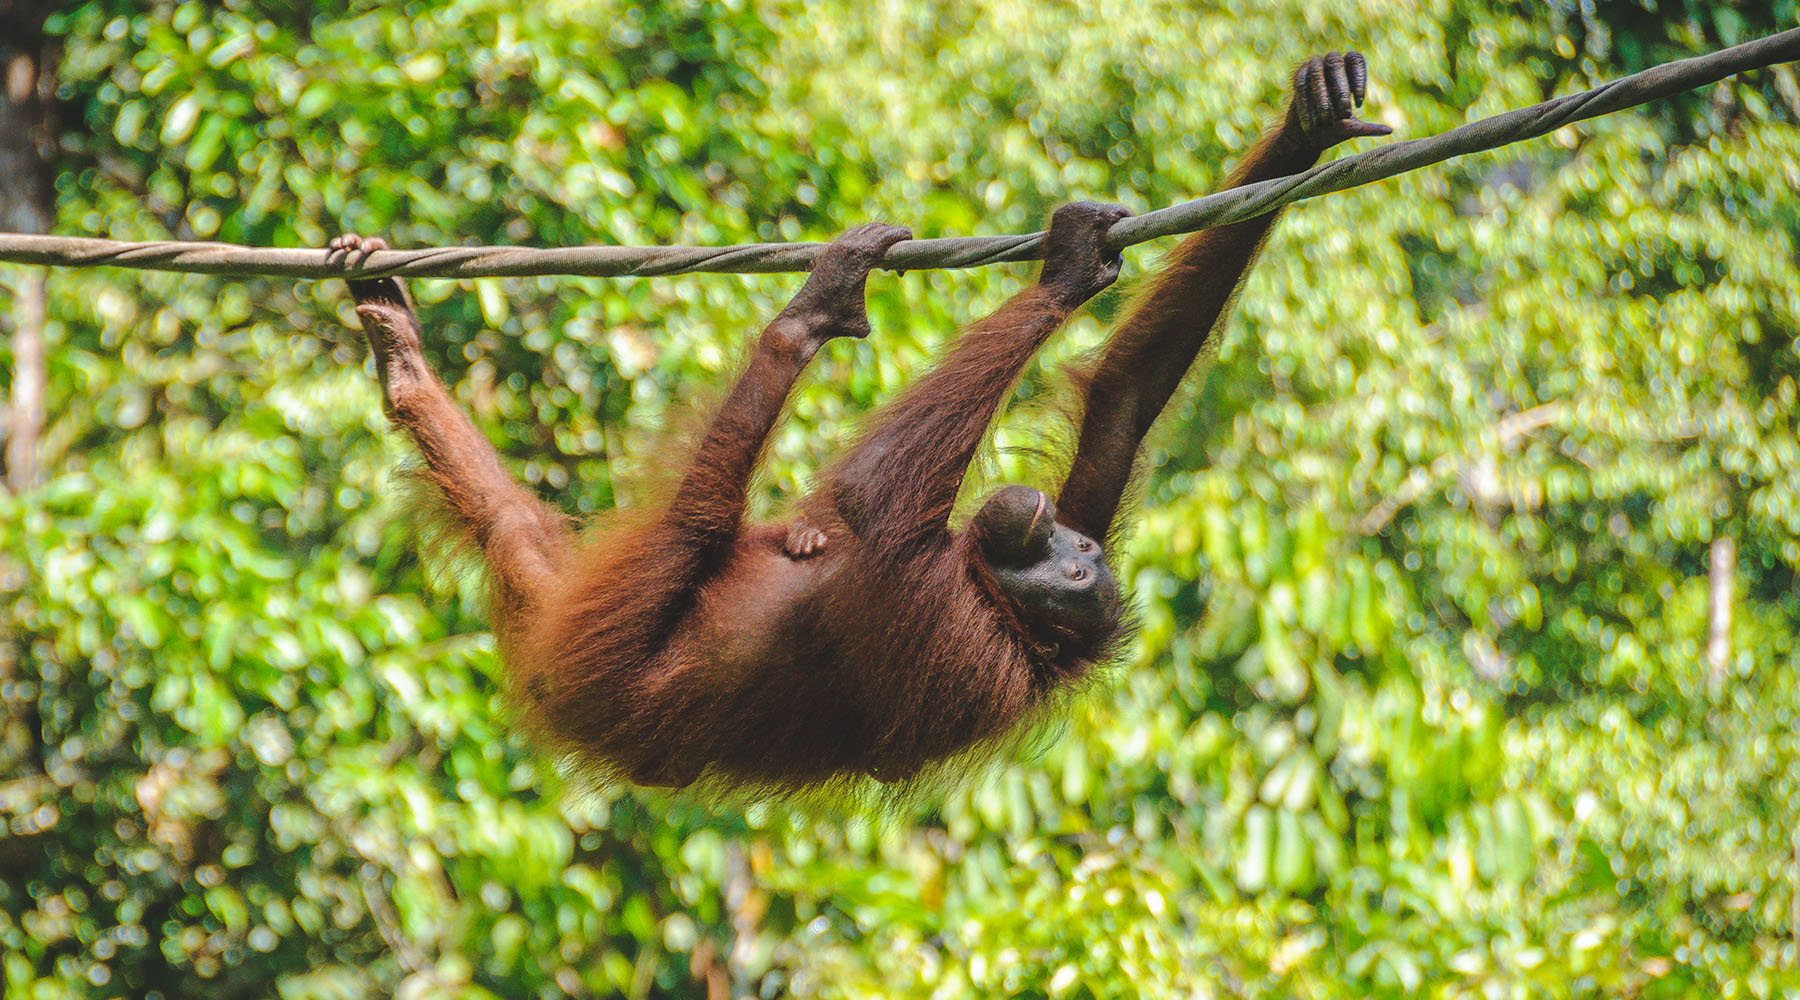 In Search of Orangutans in Borneo